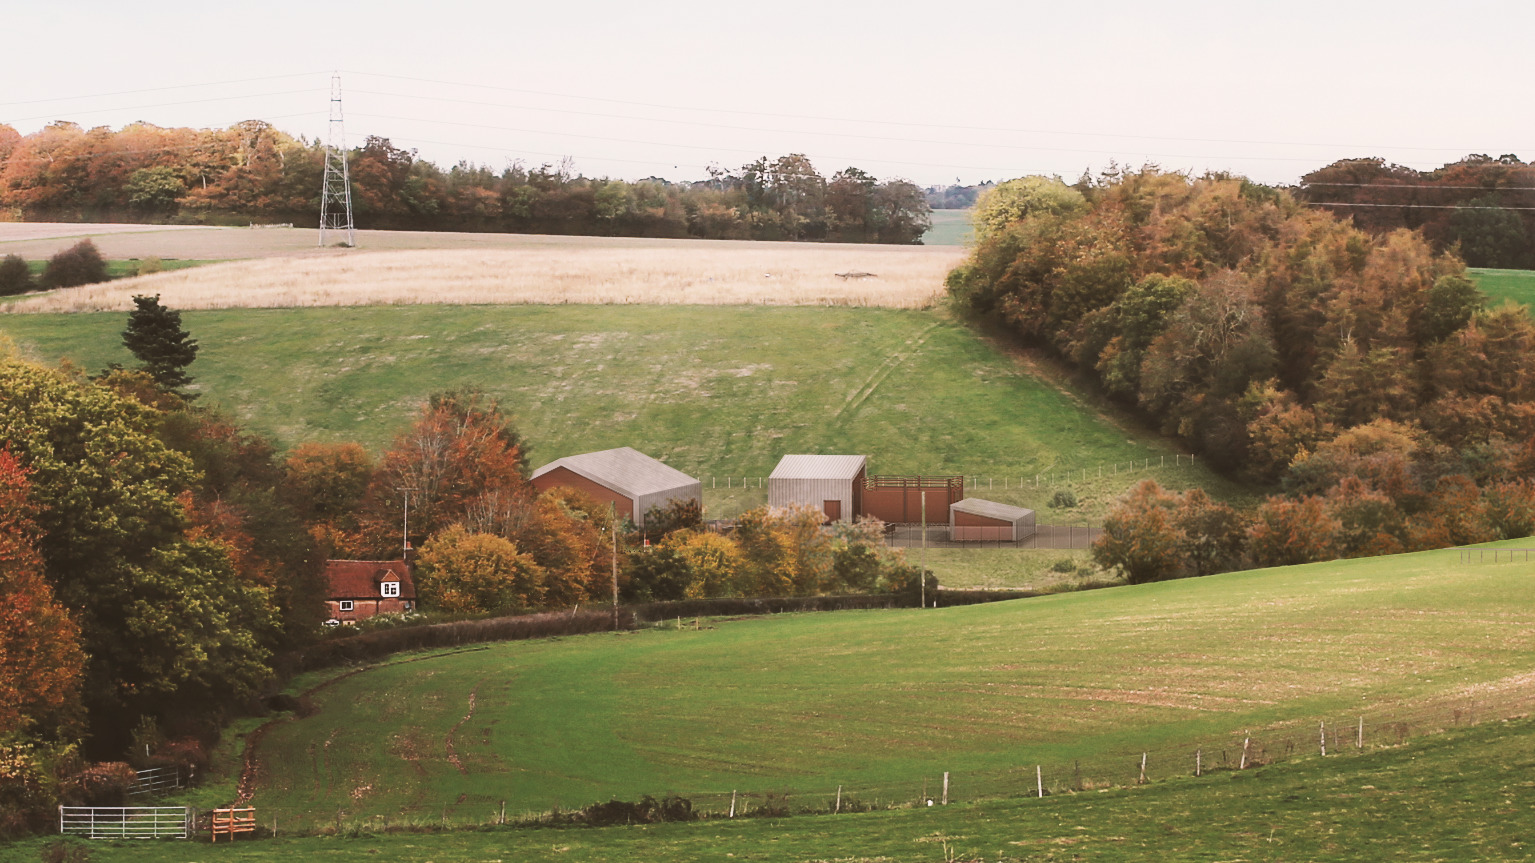 Chalfont St Giles headhouse for HS2 Chiltern tunnel